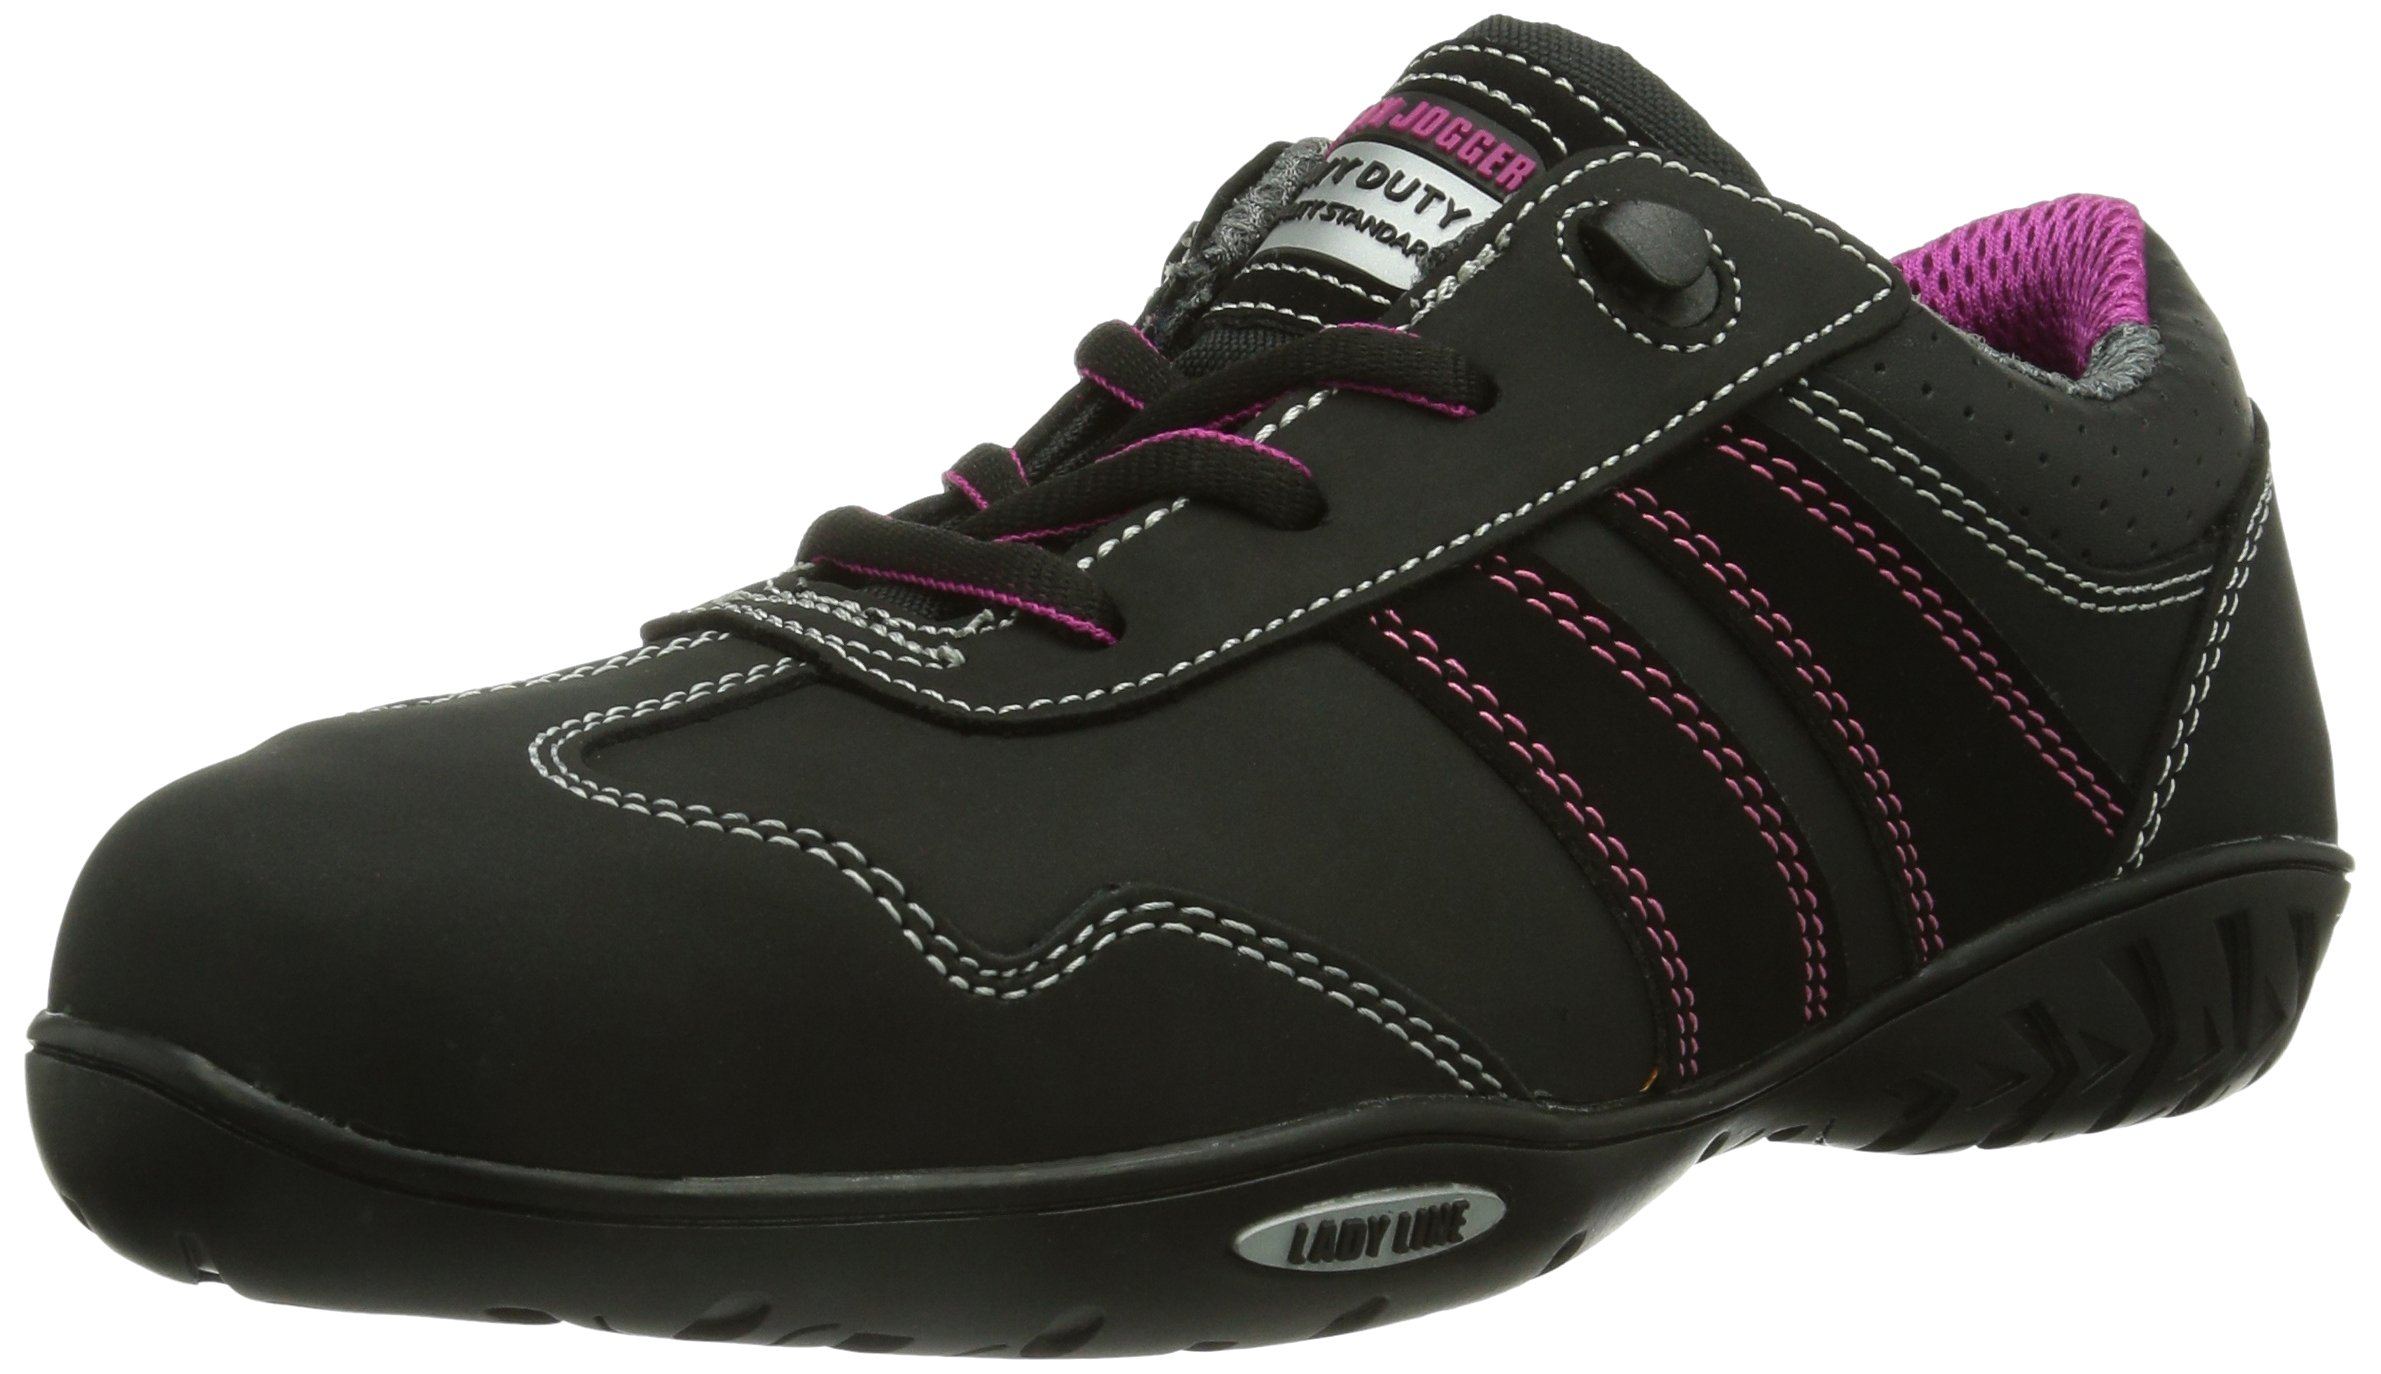 Safety Jogger 'CERES S3' Women's Occupational Steel Toe, EH, SD Safety Shoes (Black/Pink) (6 US) by Safety Jogger